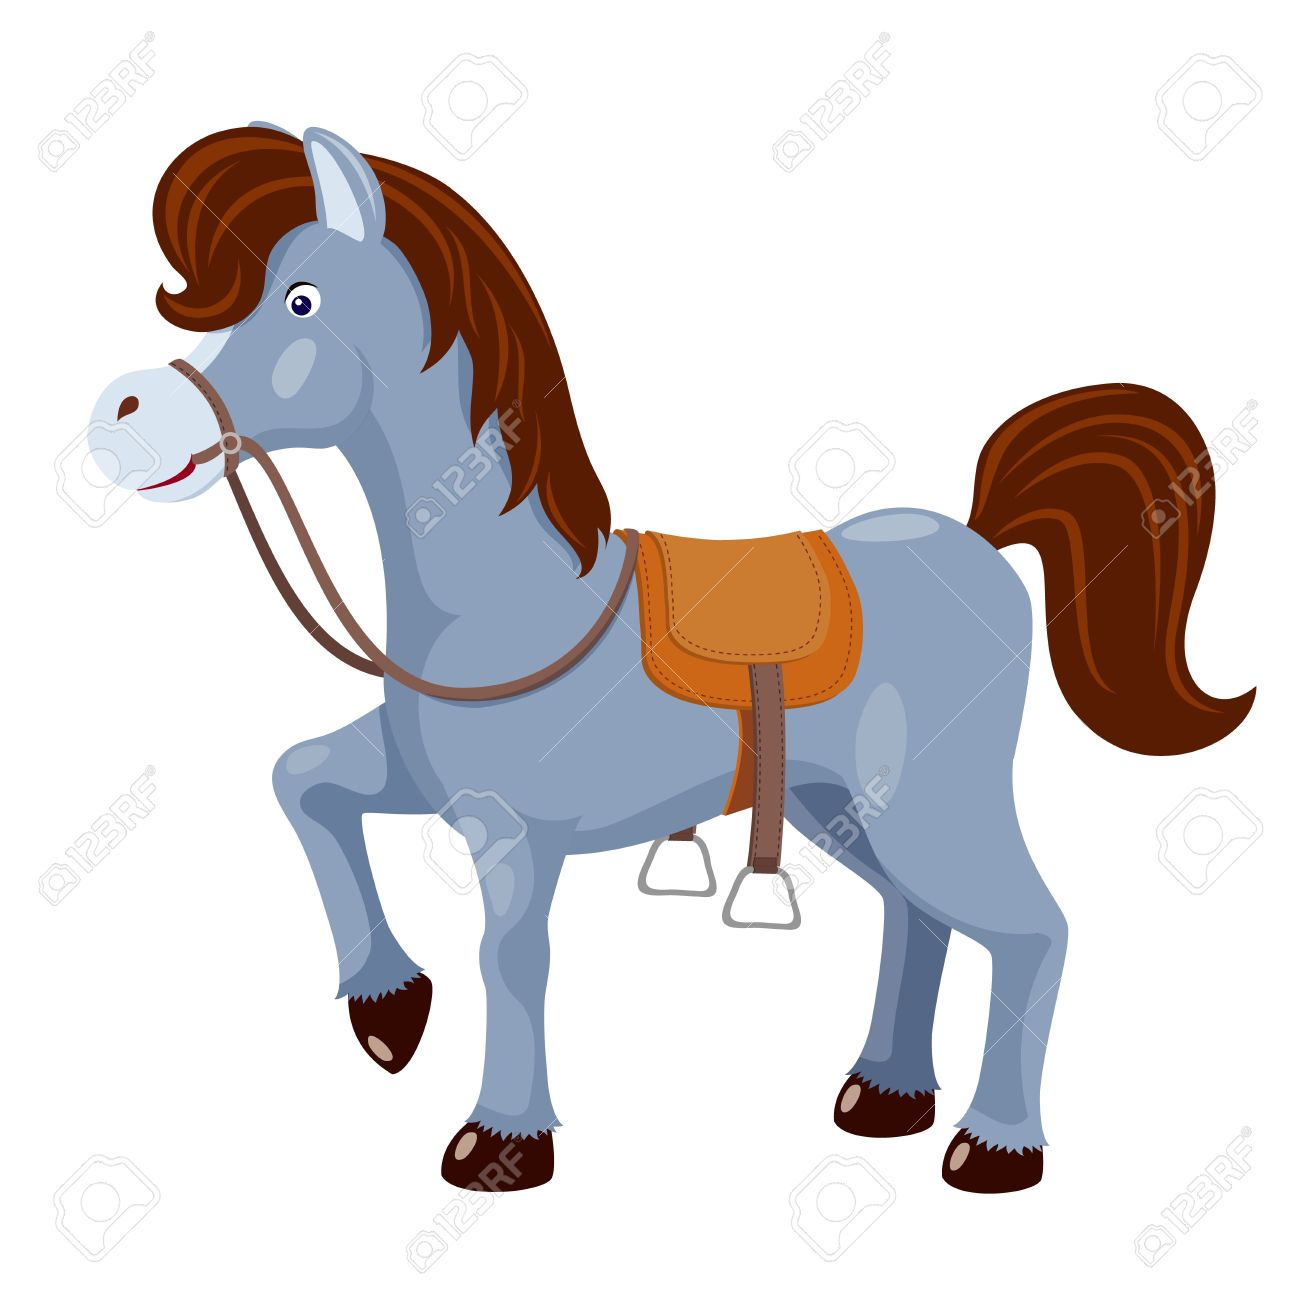 Cute Horse With Saddle Vector Royalty Free Cliparts Vectors And Stock Illustration Image 14884239